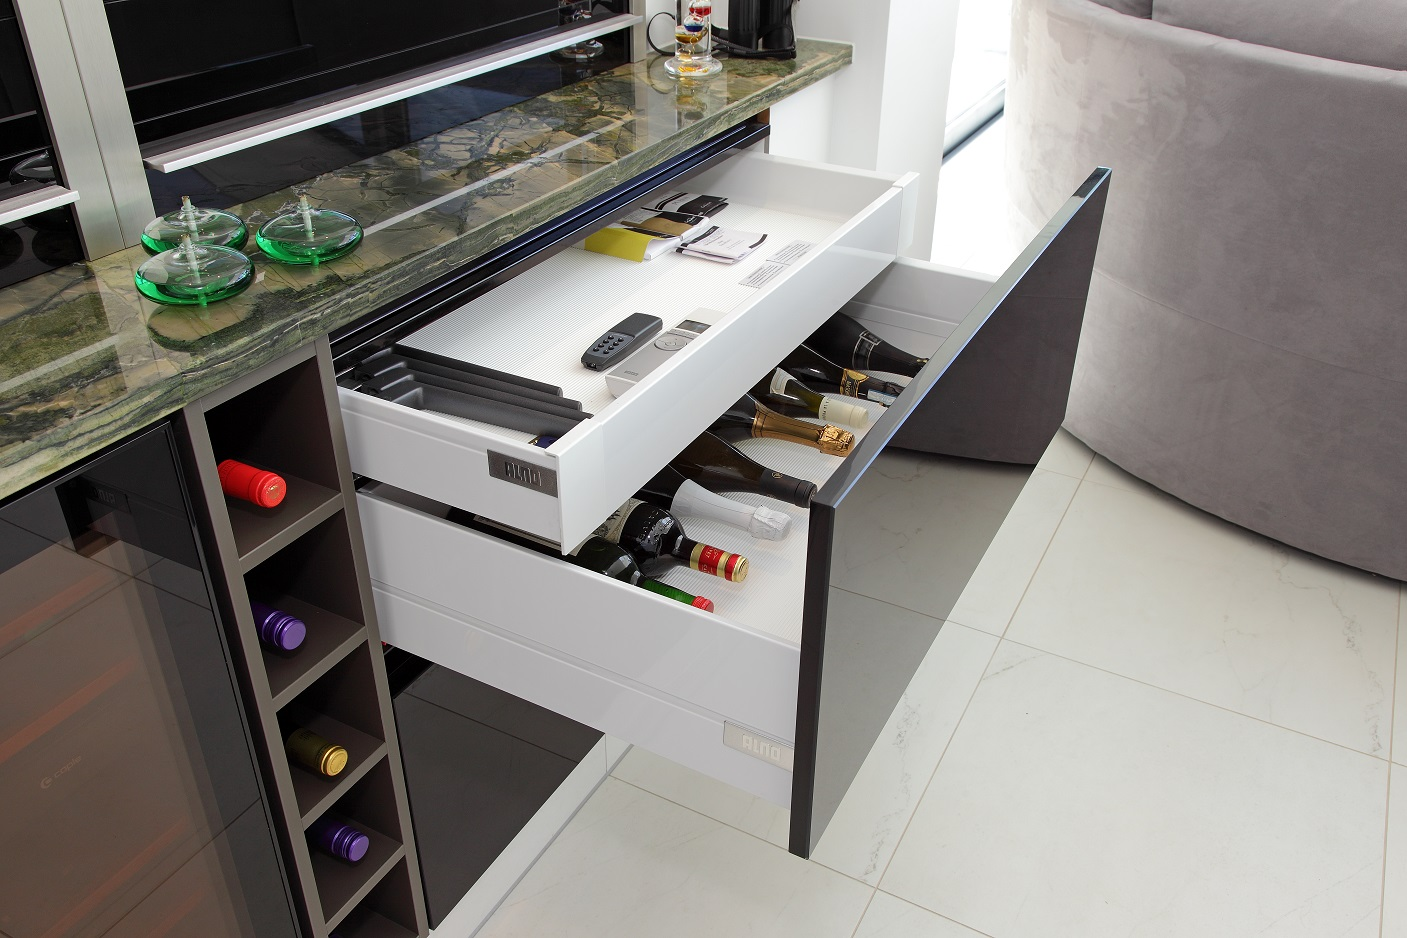 ALNO's clever storage systems mean that everything is neatly concealed yet close at hand.